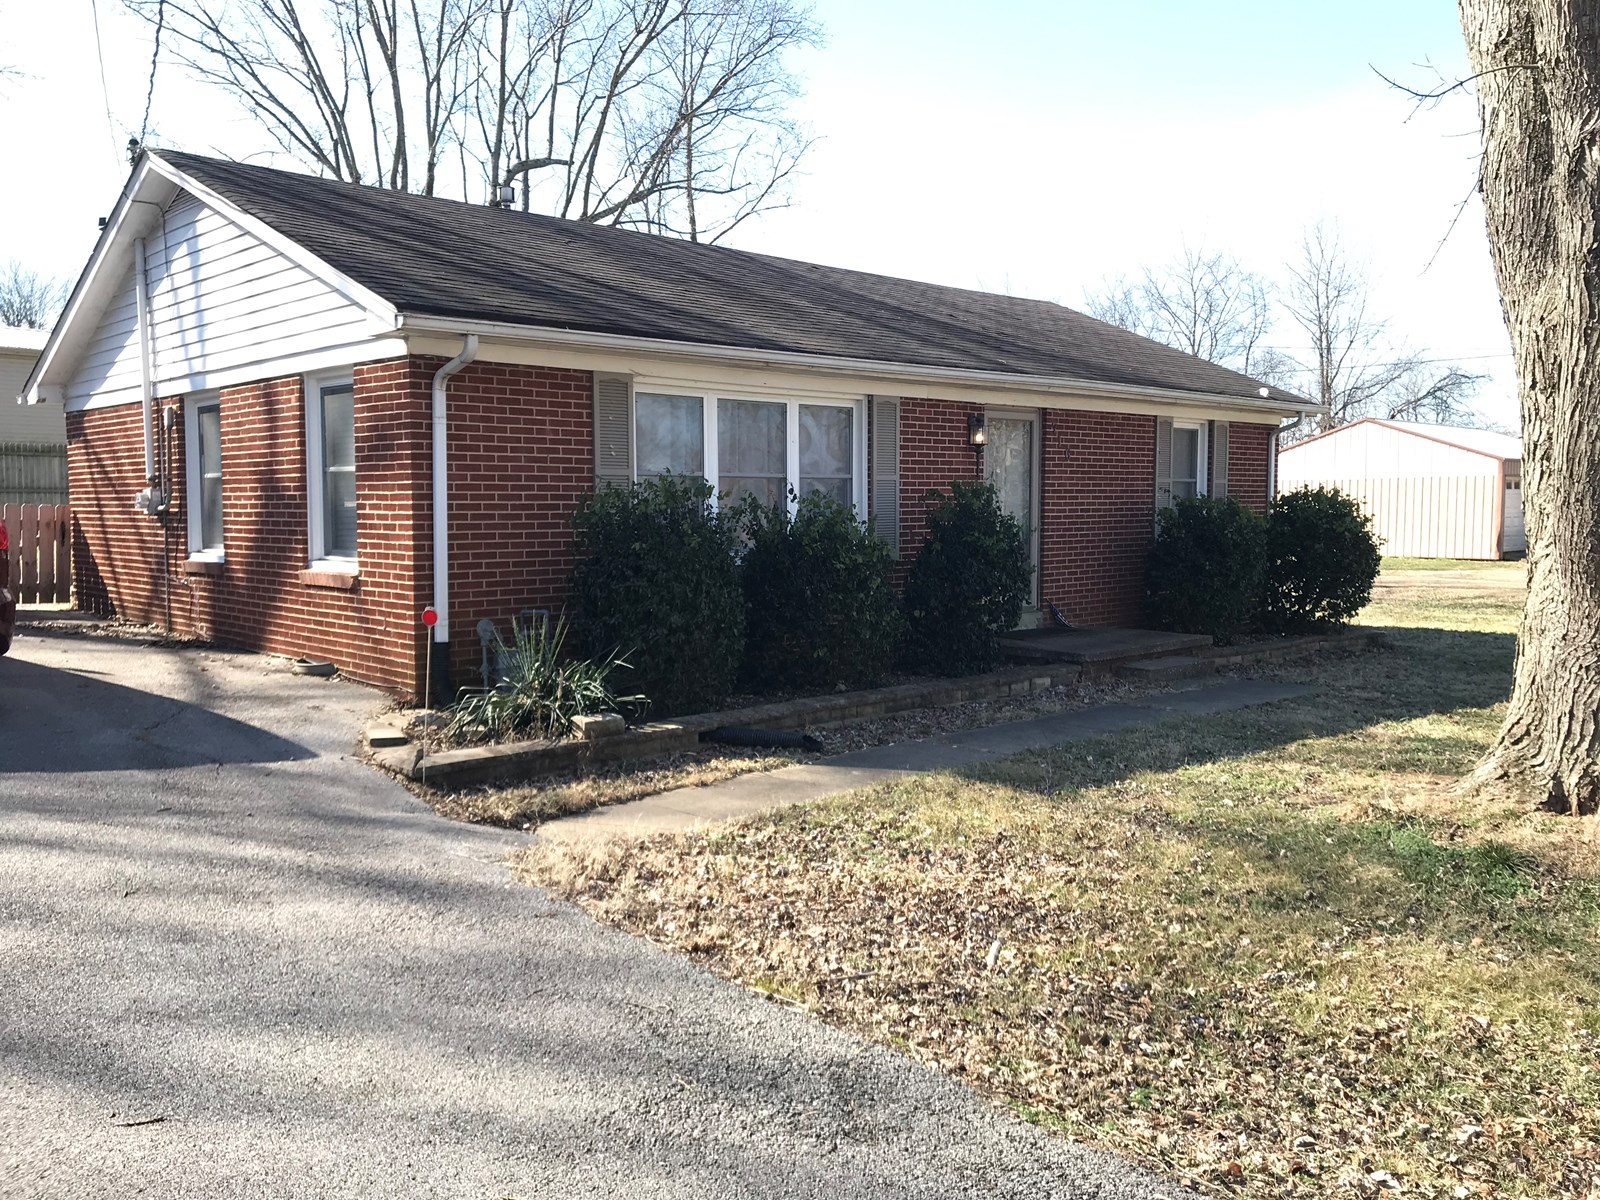 Nice 3 bedroom brick home for sale in Franklin, Ky.